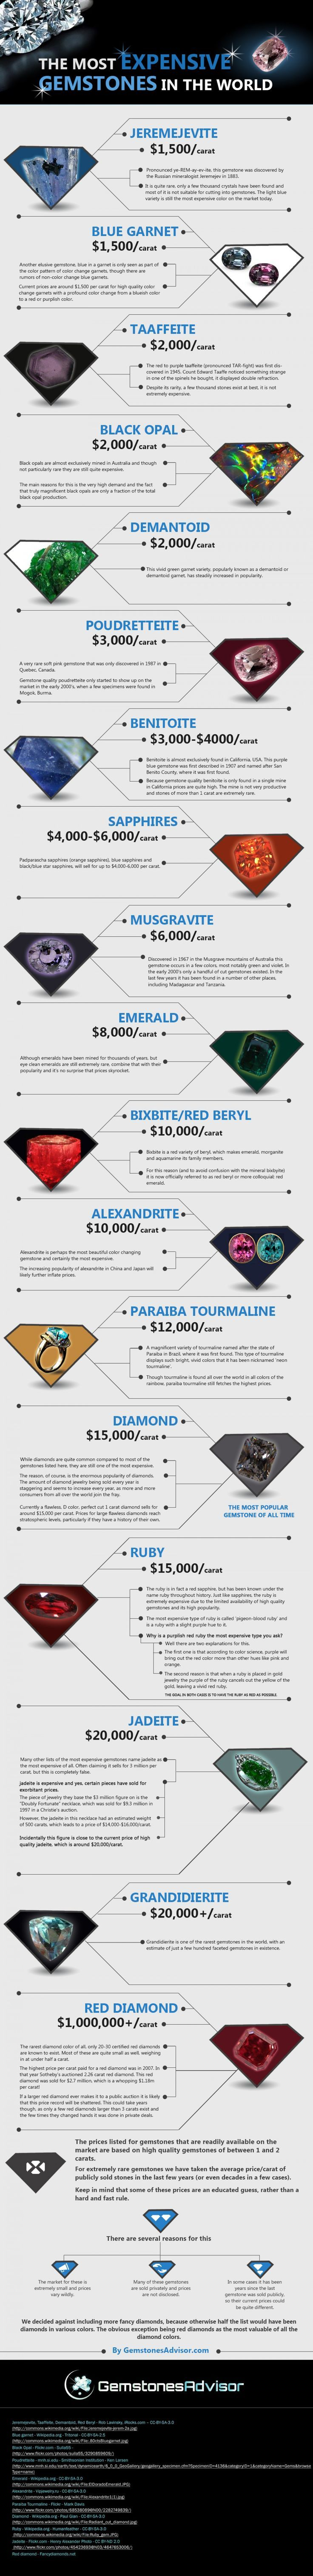 The Most Expensive Gemstones In The World With Images Gems Gems Jewelry Gemstones